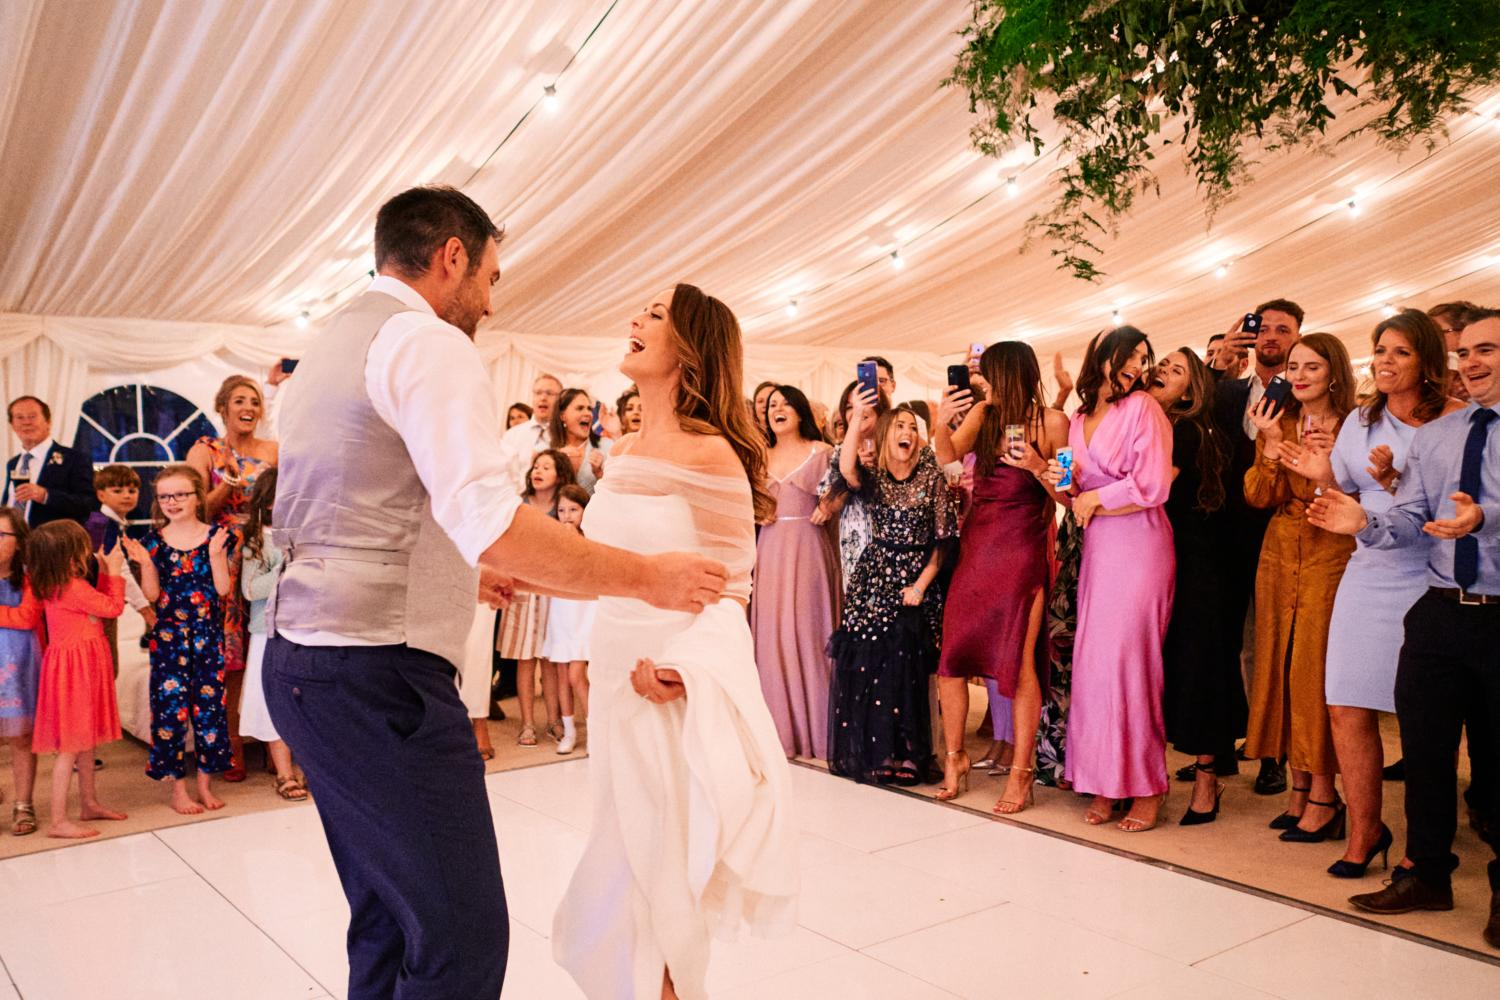 A bride and groom begin their first dance in a marquee